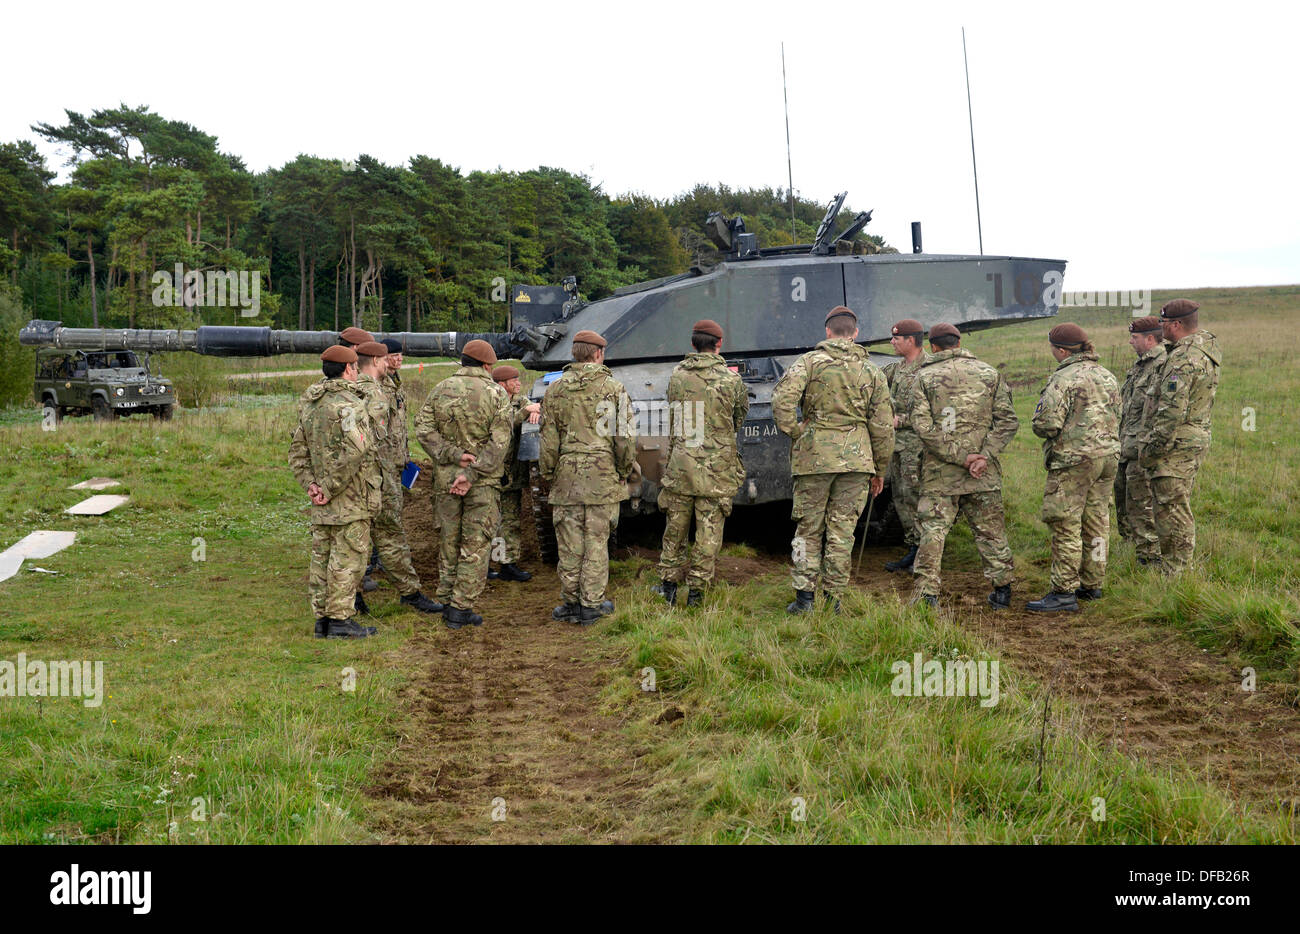 Challenger Mk ll battle tank. British Army reserve units training with the full time regular regiments, in this case the Royal Kings Hussars who are a tank regiment and operate Challenger Mk ll 60 tonne battle tanks. Salisbury Plain, UK - Stock Image